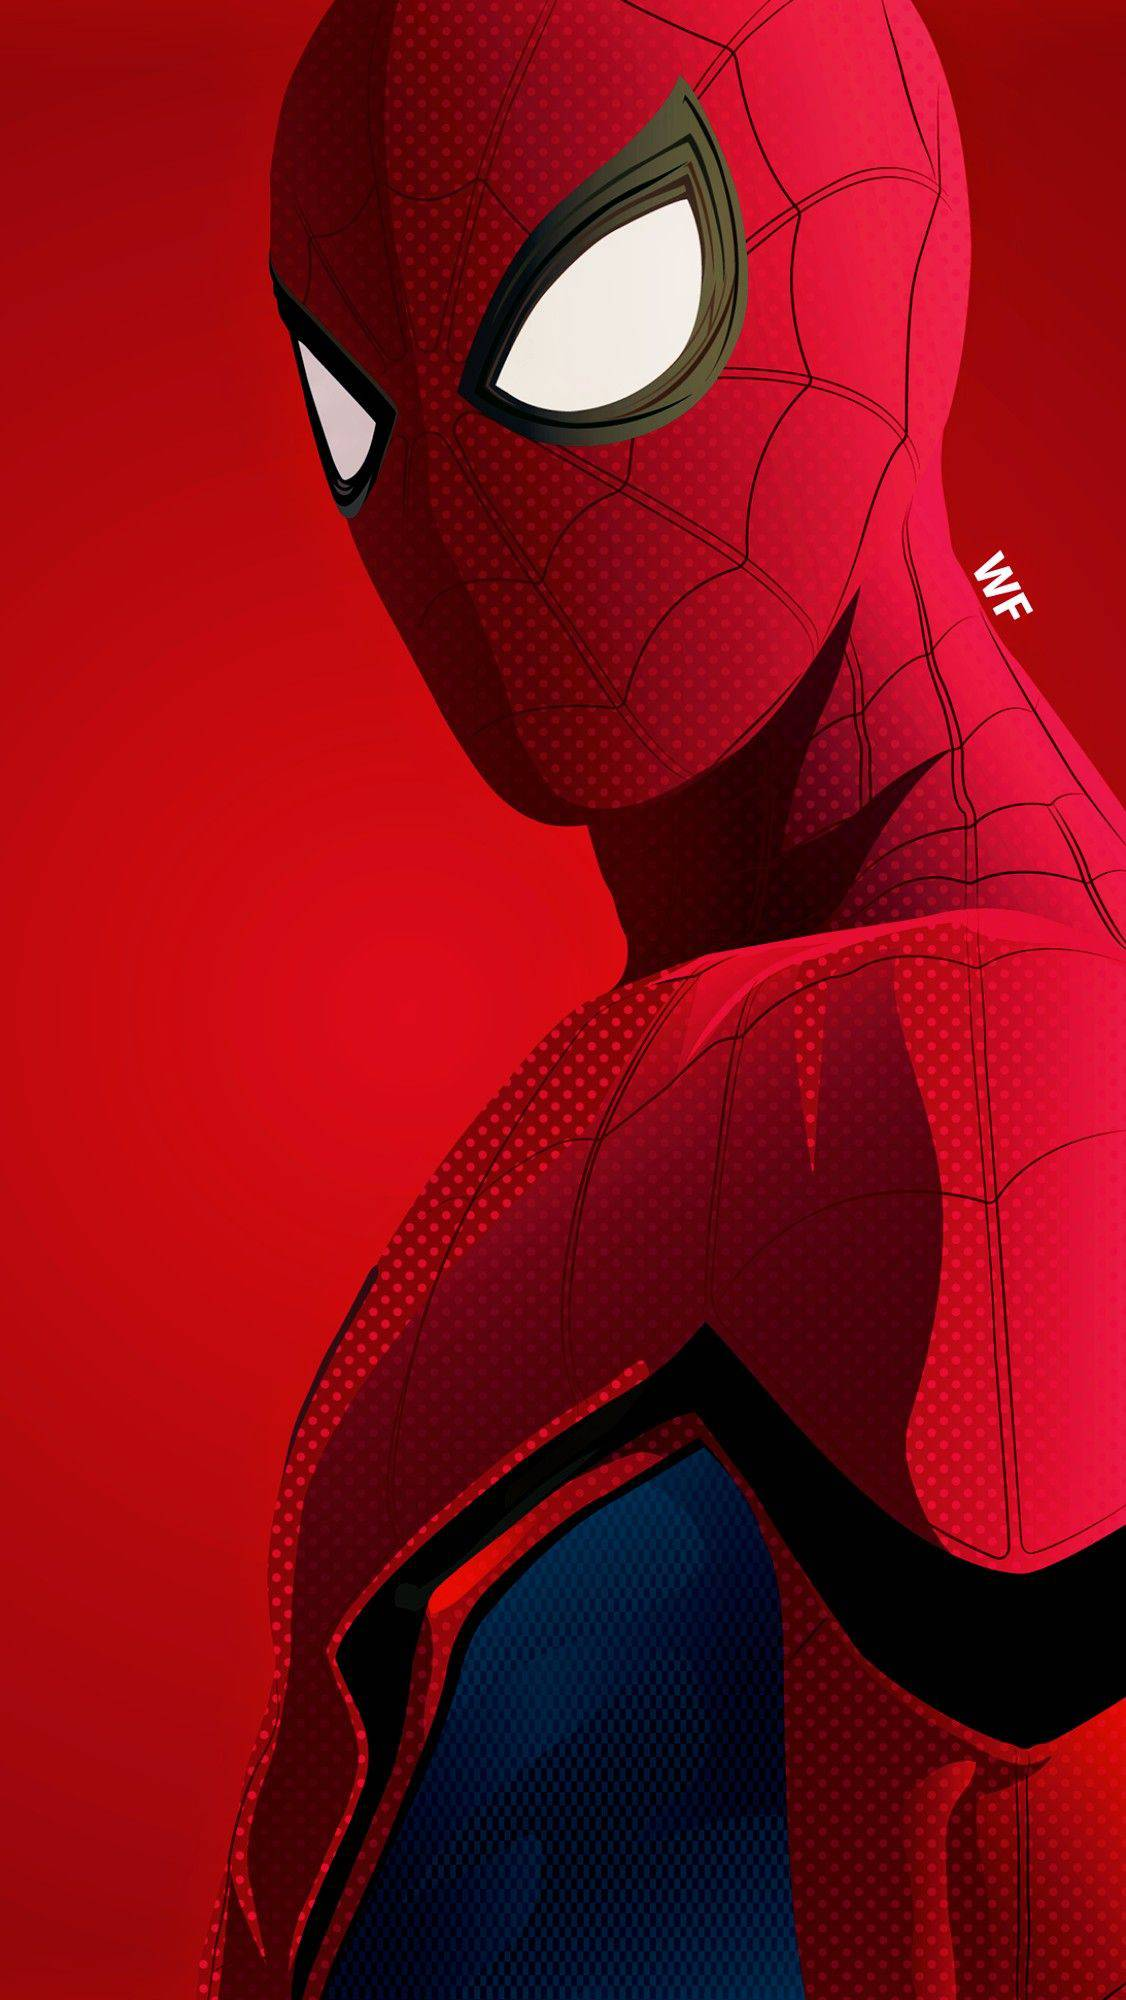 Red Spiderman iPhone Wallpaper - iPhone Wallpapers ...